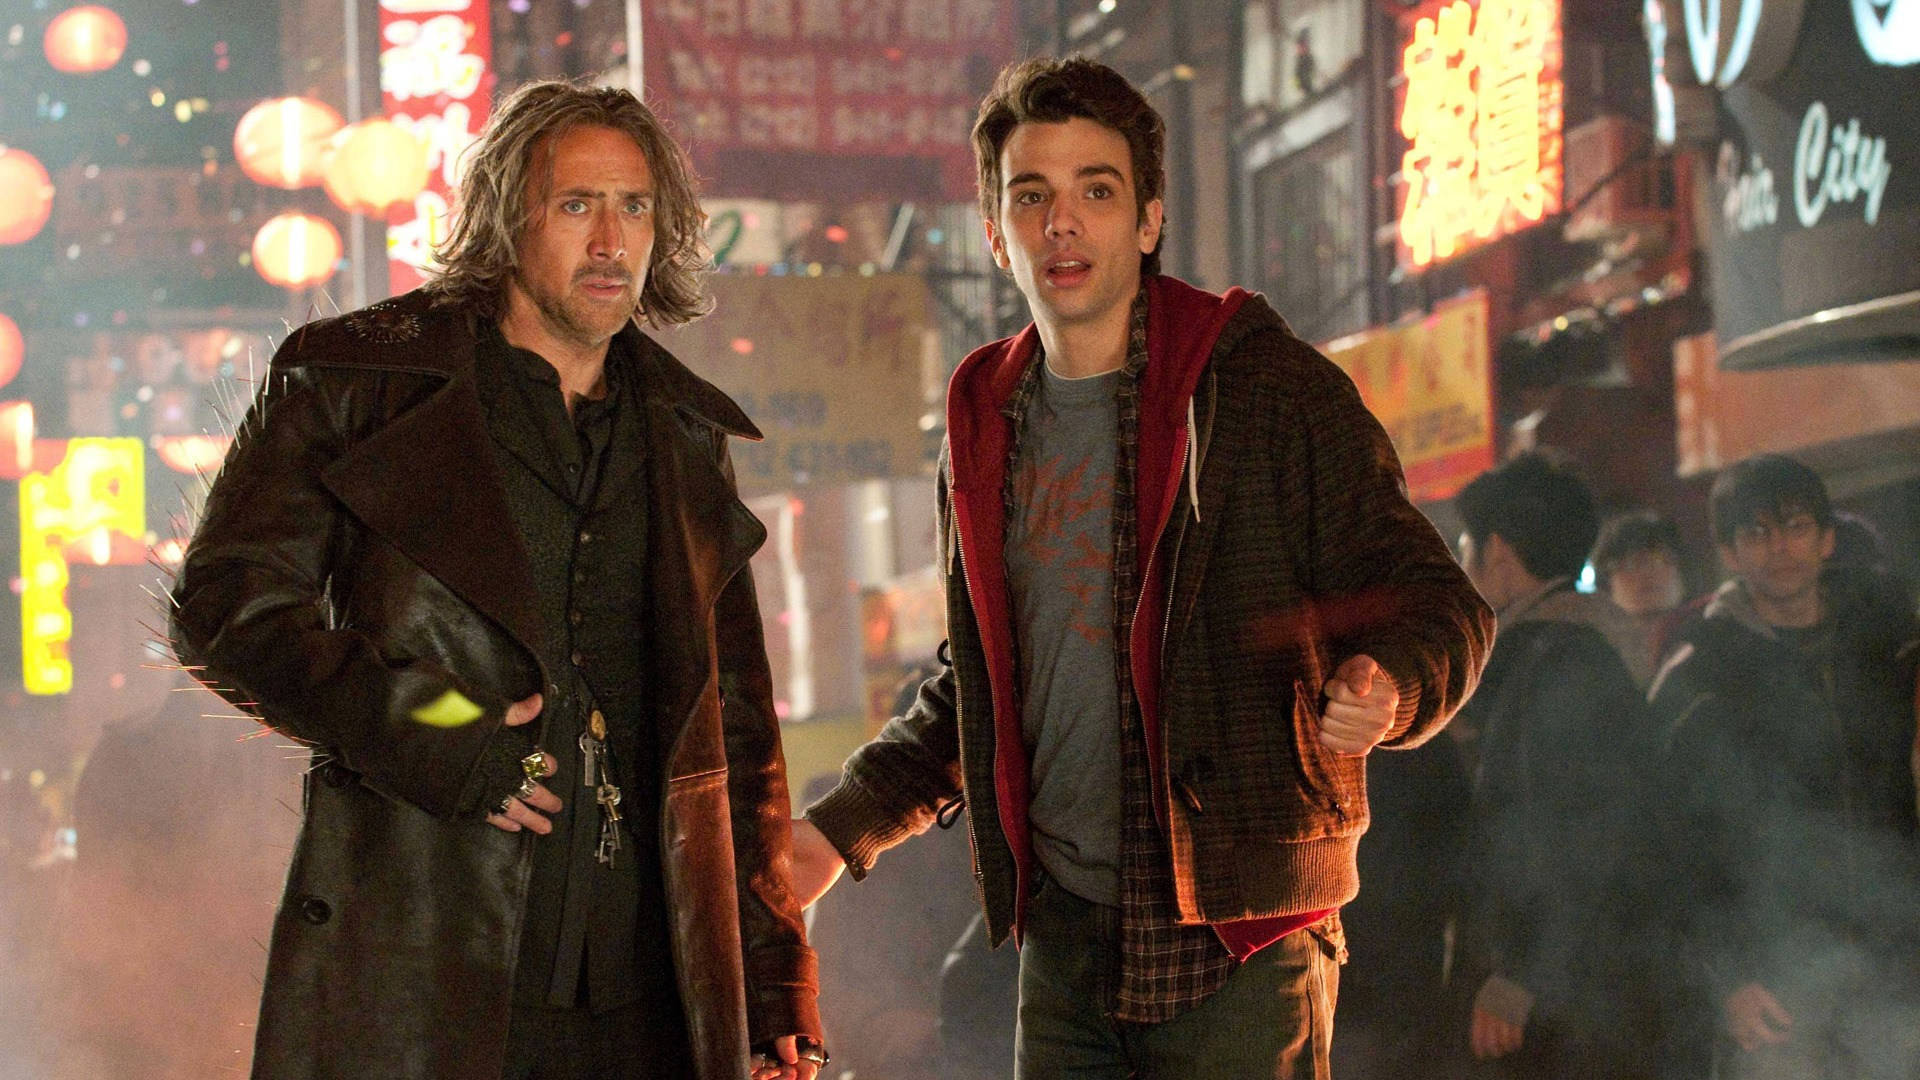 Sorcerer Balthazar (Nicolas Cage) and his apprentice Dave Stutler (Jay Baruchel) in The Sorcerer's Apprentice (2010)